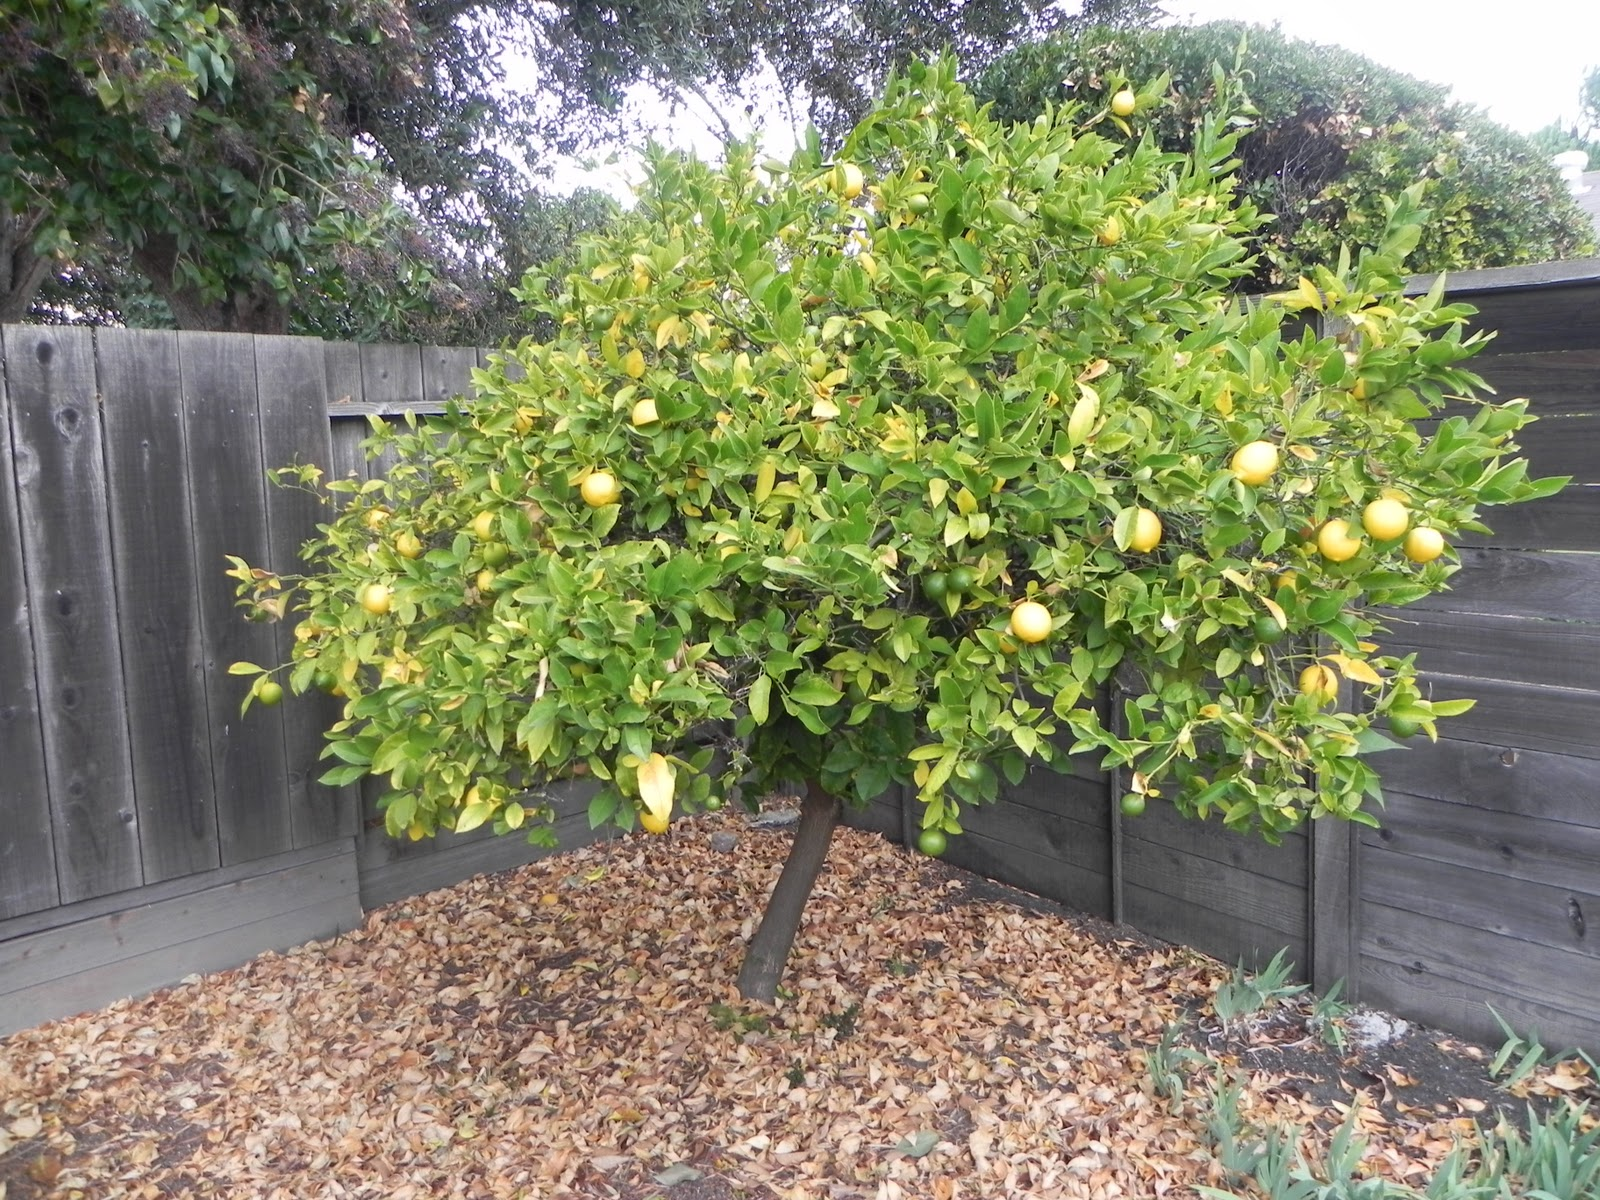 One Of The Joys California Is Fruit Trees I Love That My Backyard Has A Lemon Tree There Also An Orange